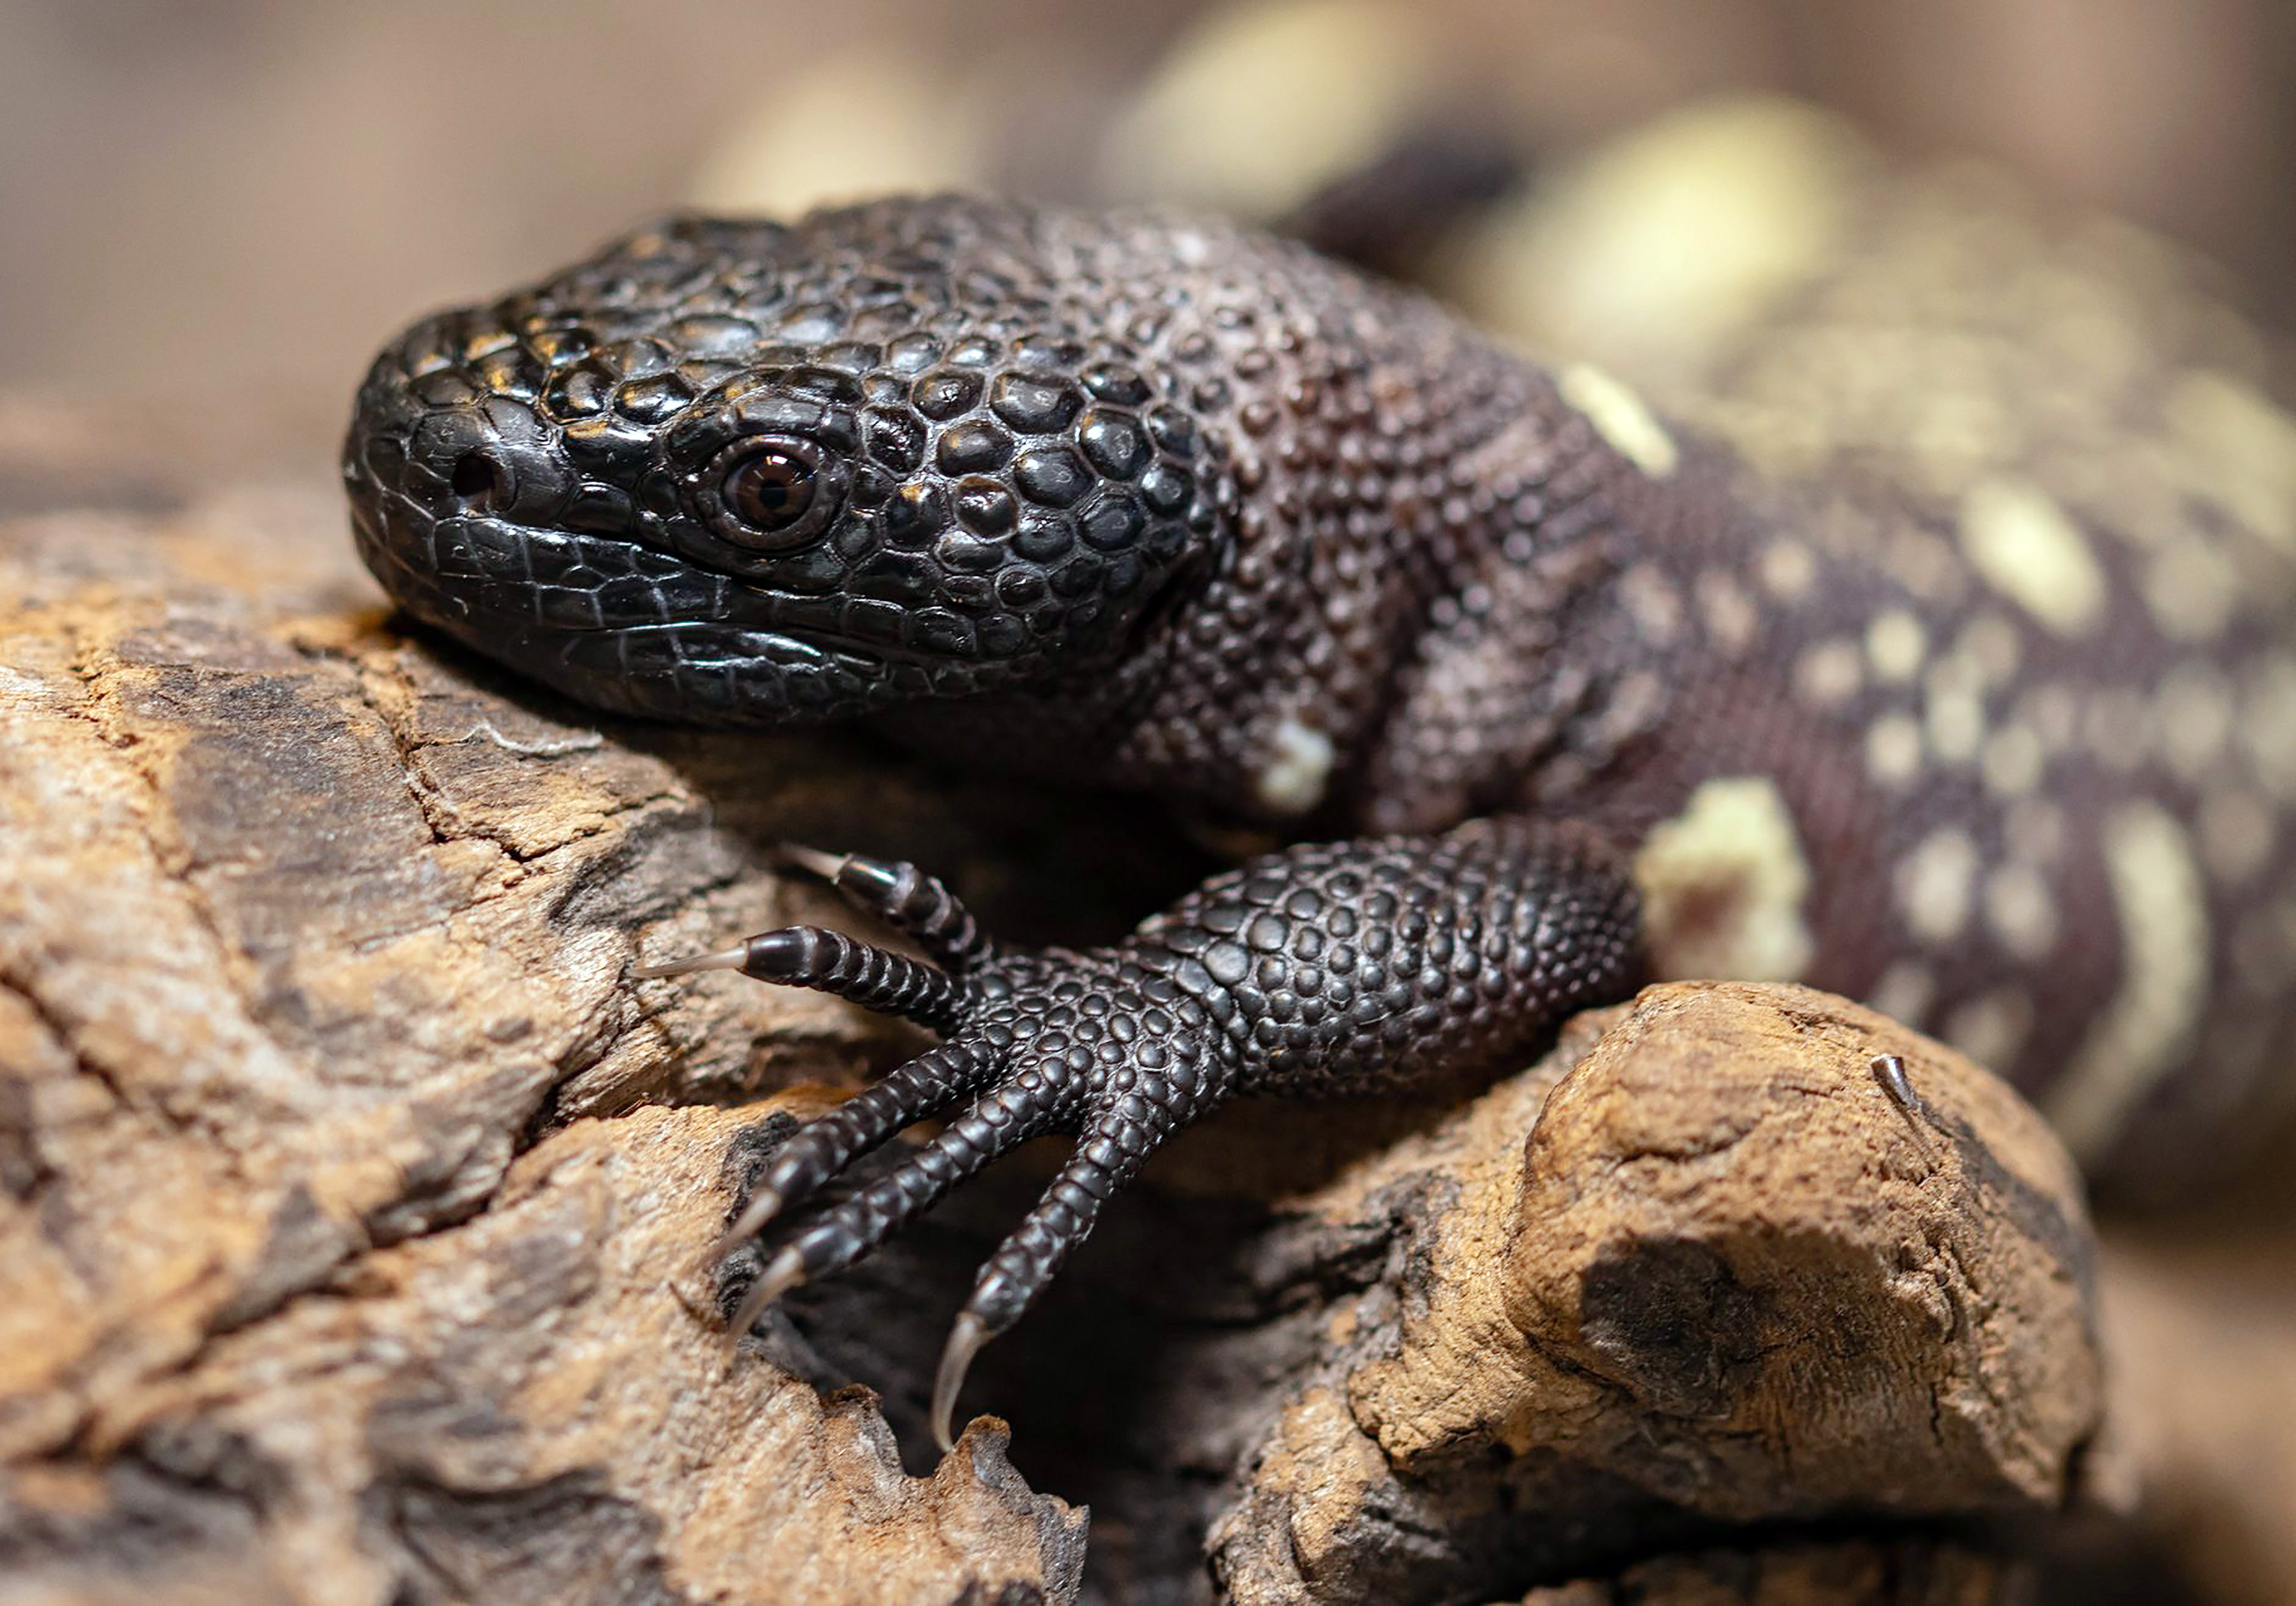 One of the two endangered venomous Mexican beaded lizards that hatched in February at an incubator is seen in Wroclaw Zoo, Poland